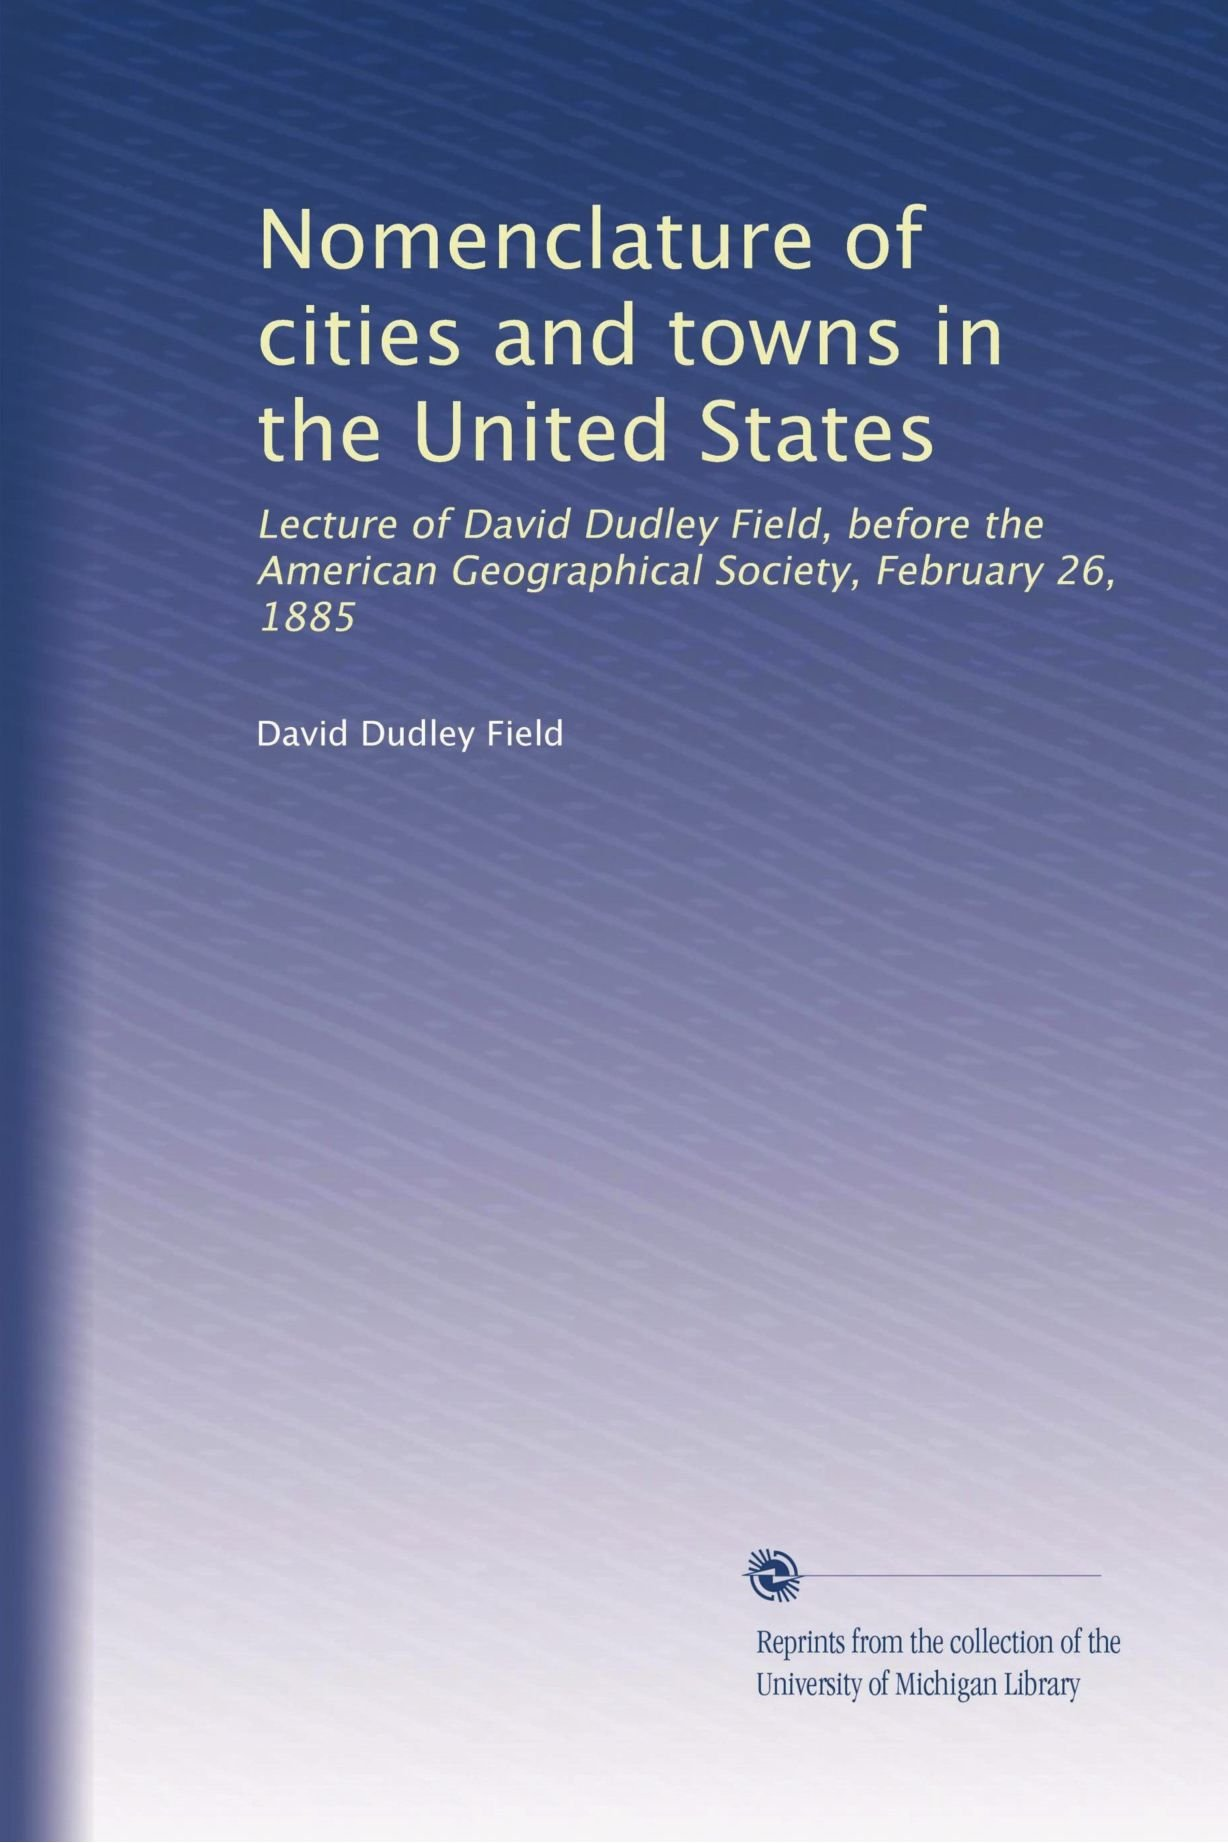 Read Online Nomenclature of cities and towns in the United States: Lecture of David Dudley Field, before the American Geographical Society, February 26, 1885 PDF